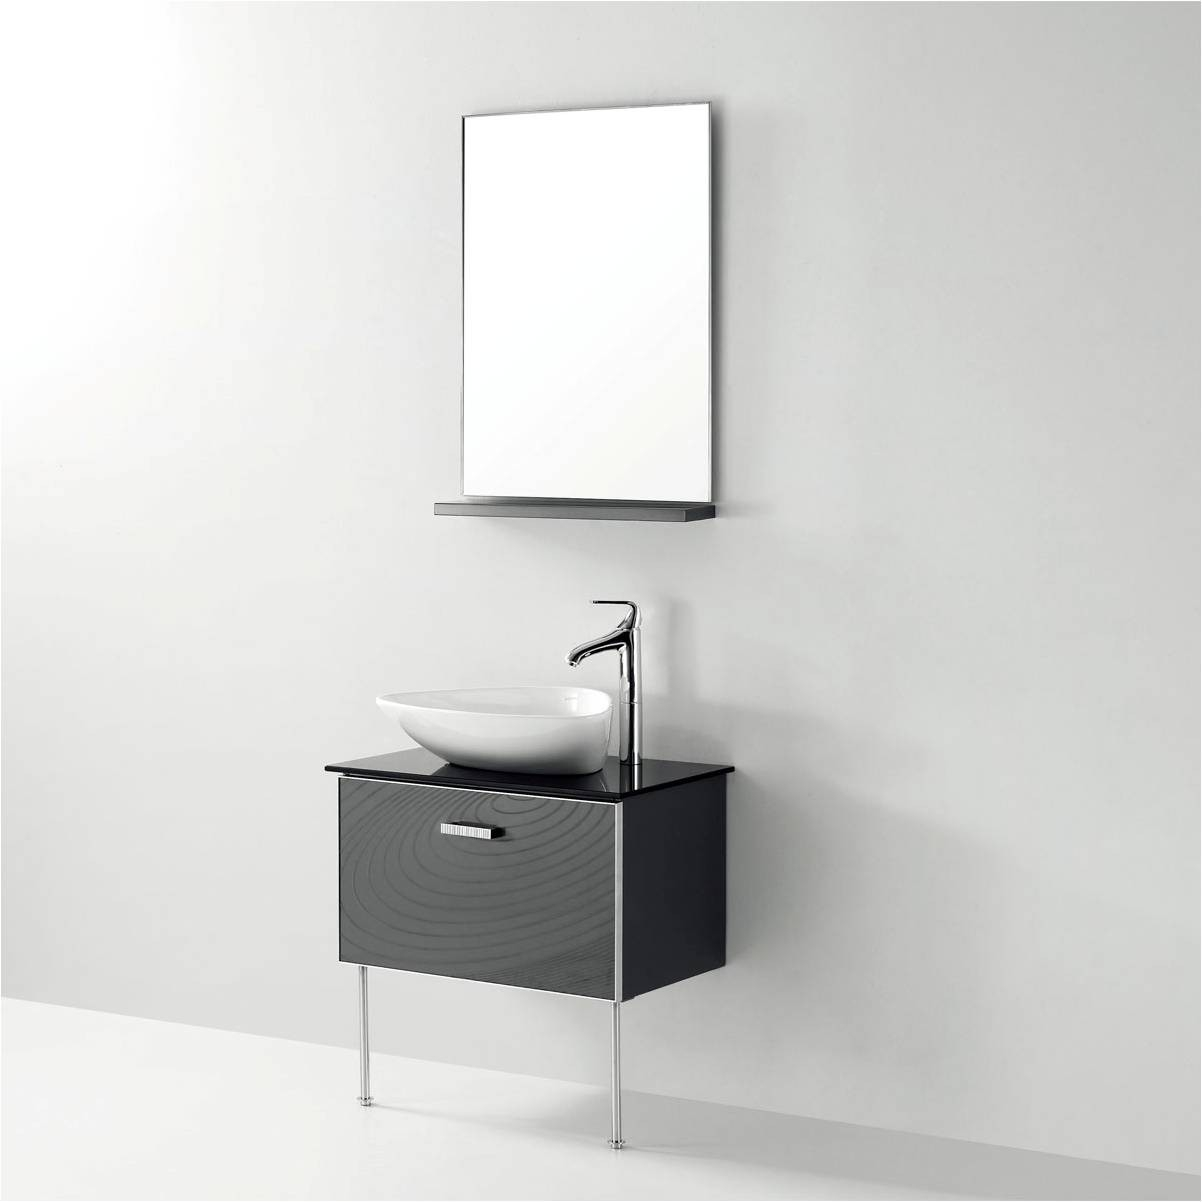 Modern Bathroom Mirror With Shelf